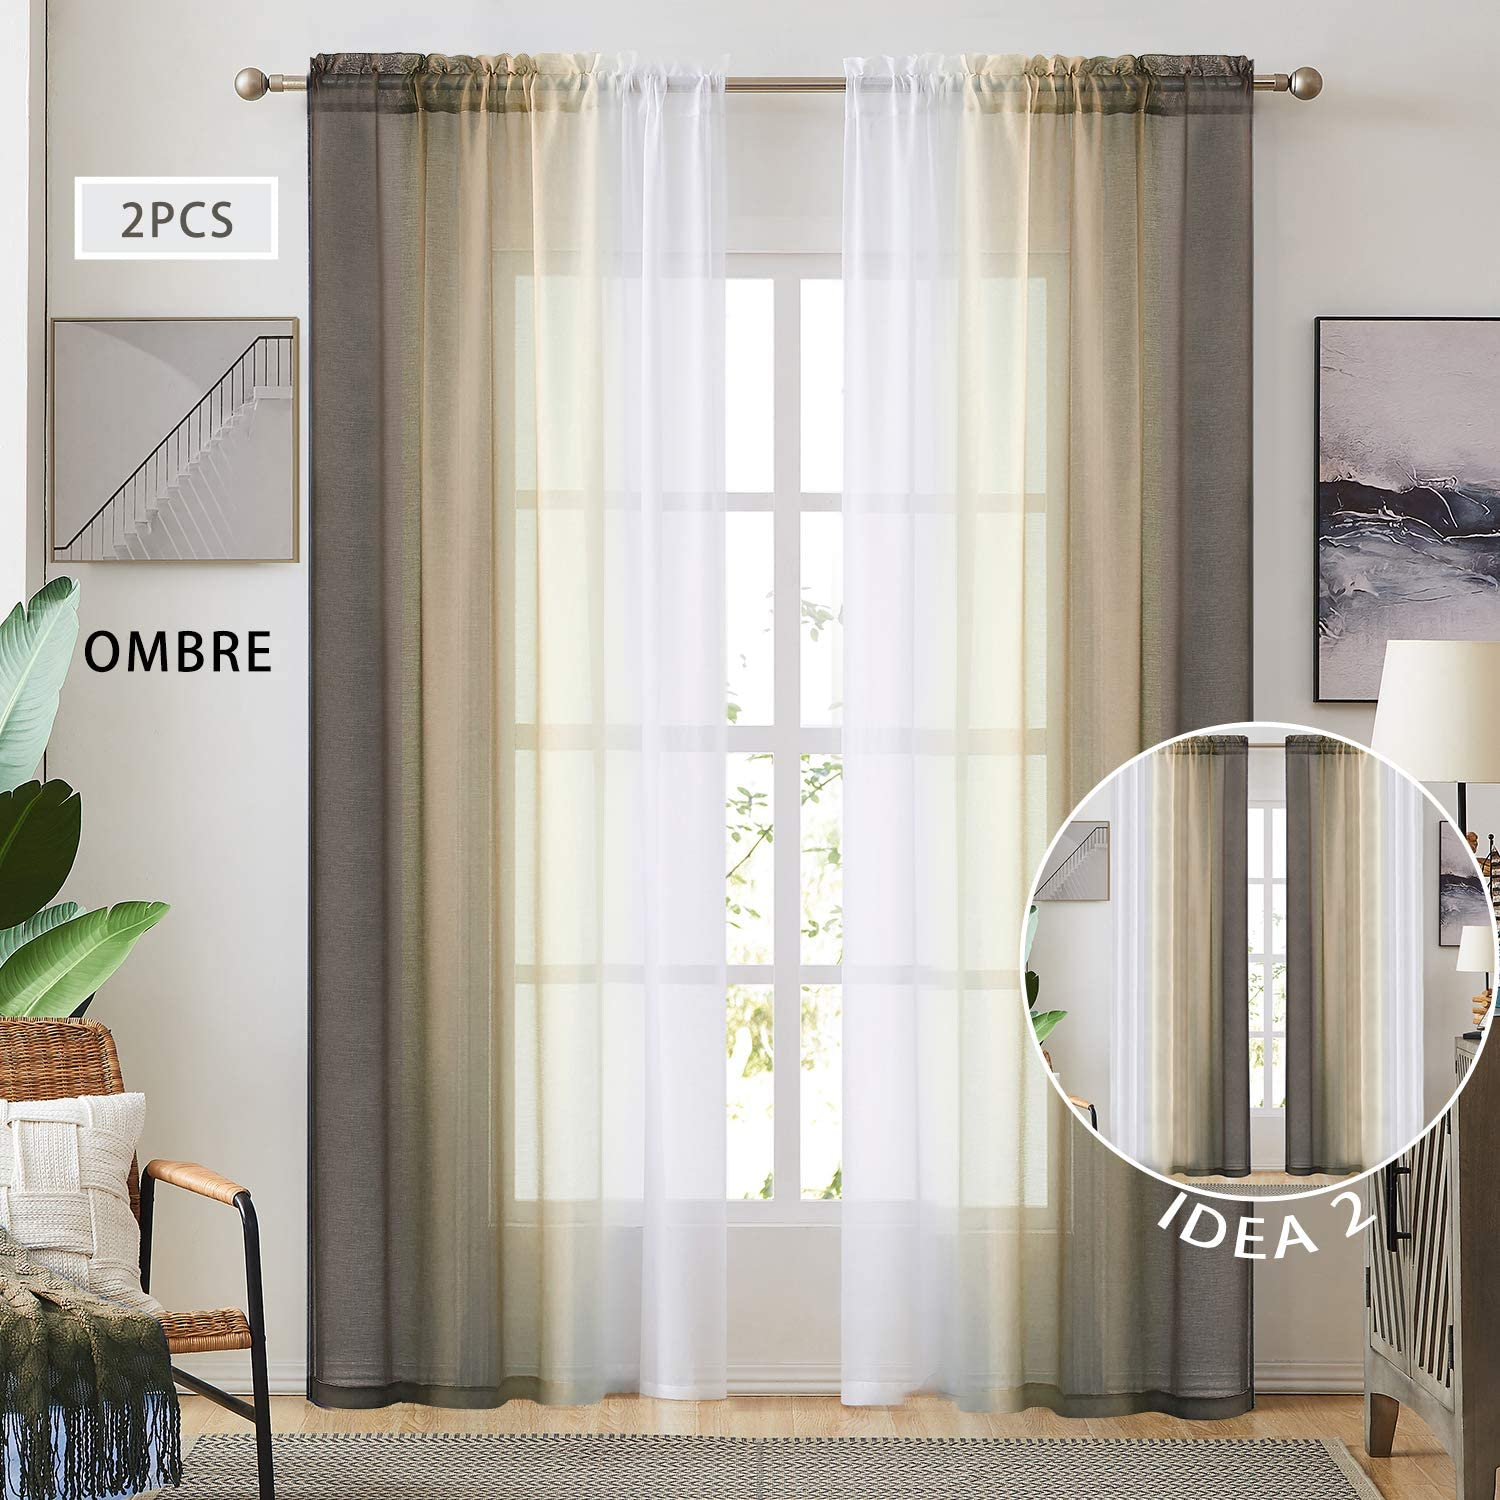 New products, world's highest quality popular! Ombre Faux Linen Sheer Curtains Direct sale of manufacturer for Bedroom Rod Living Room Pock